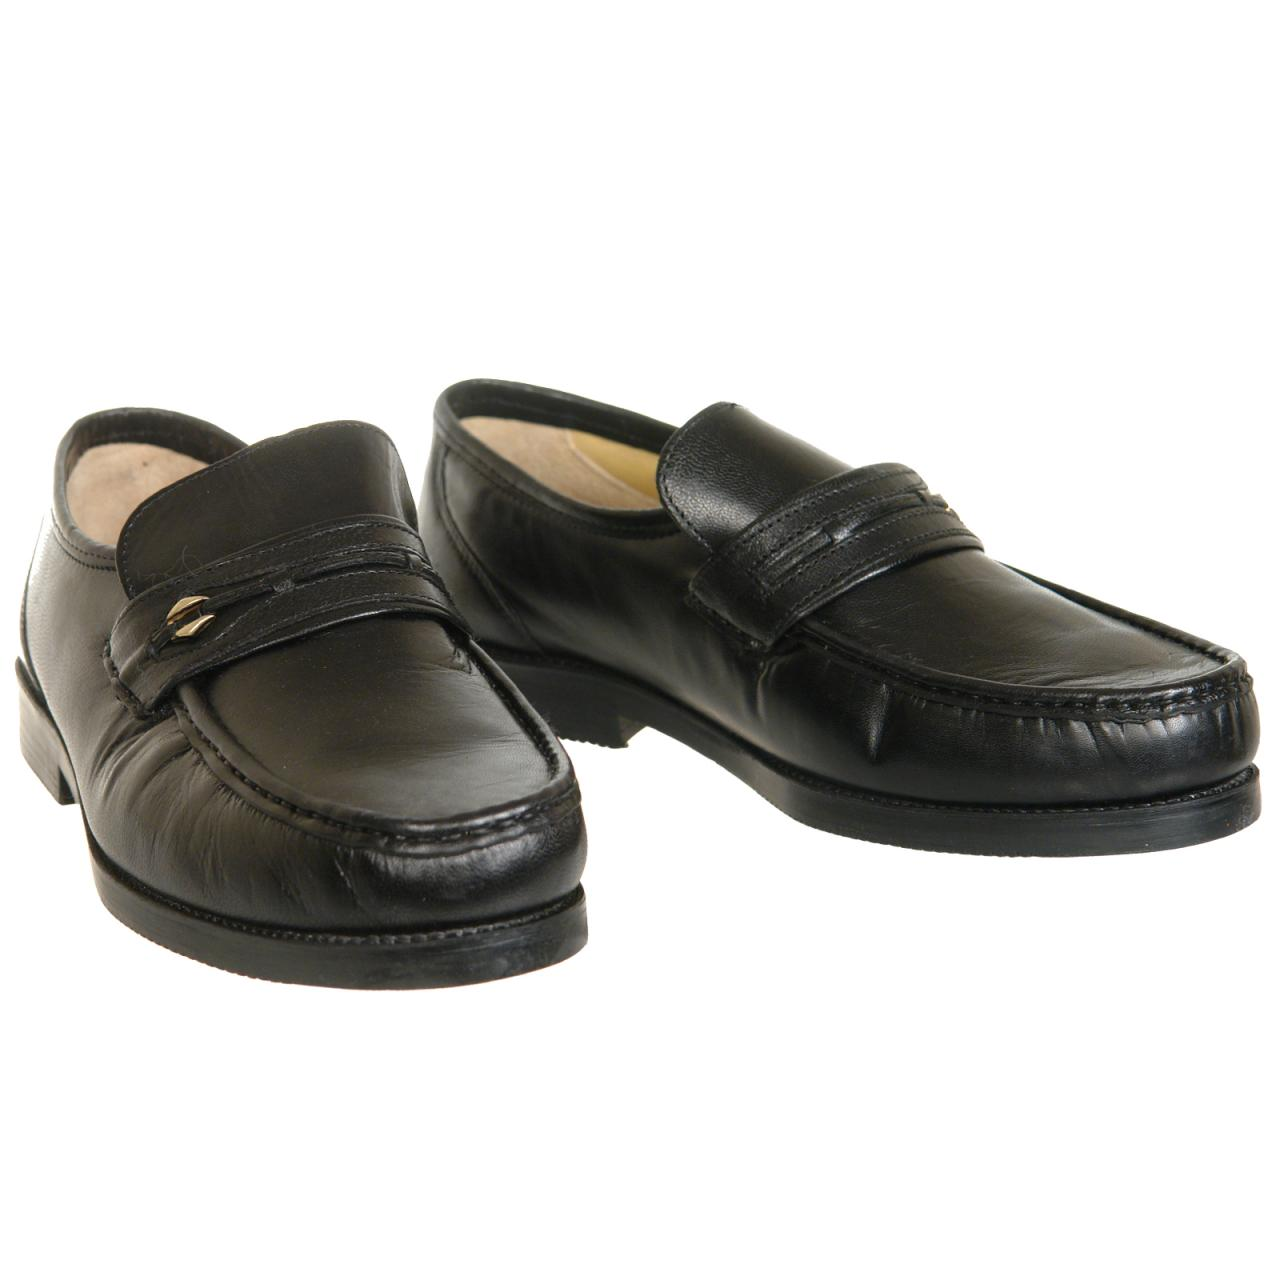 Mens Leather Slip On Moccasin Shoes Wide Fitting Size 6 7